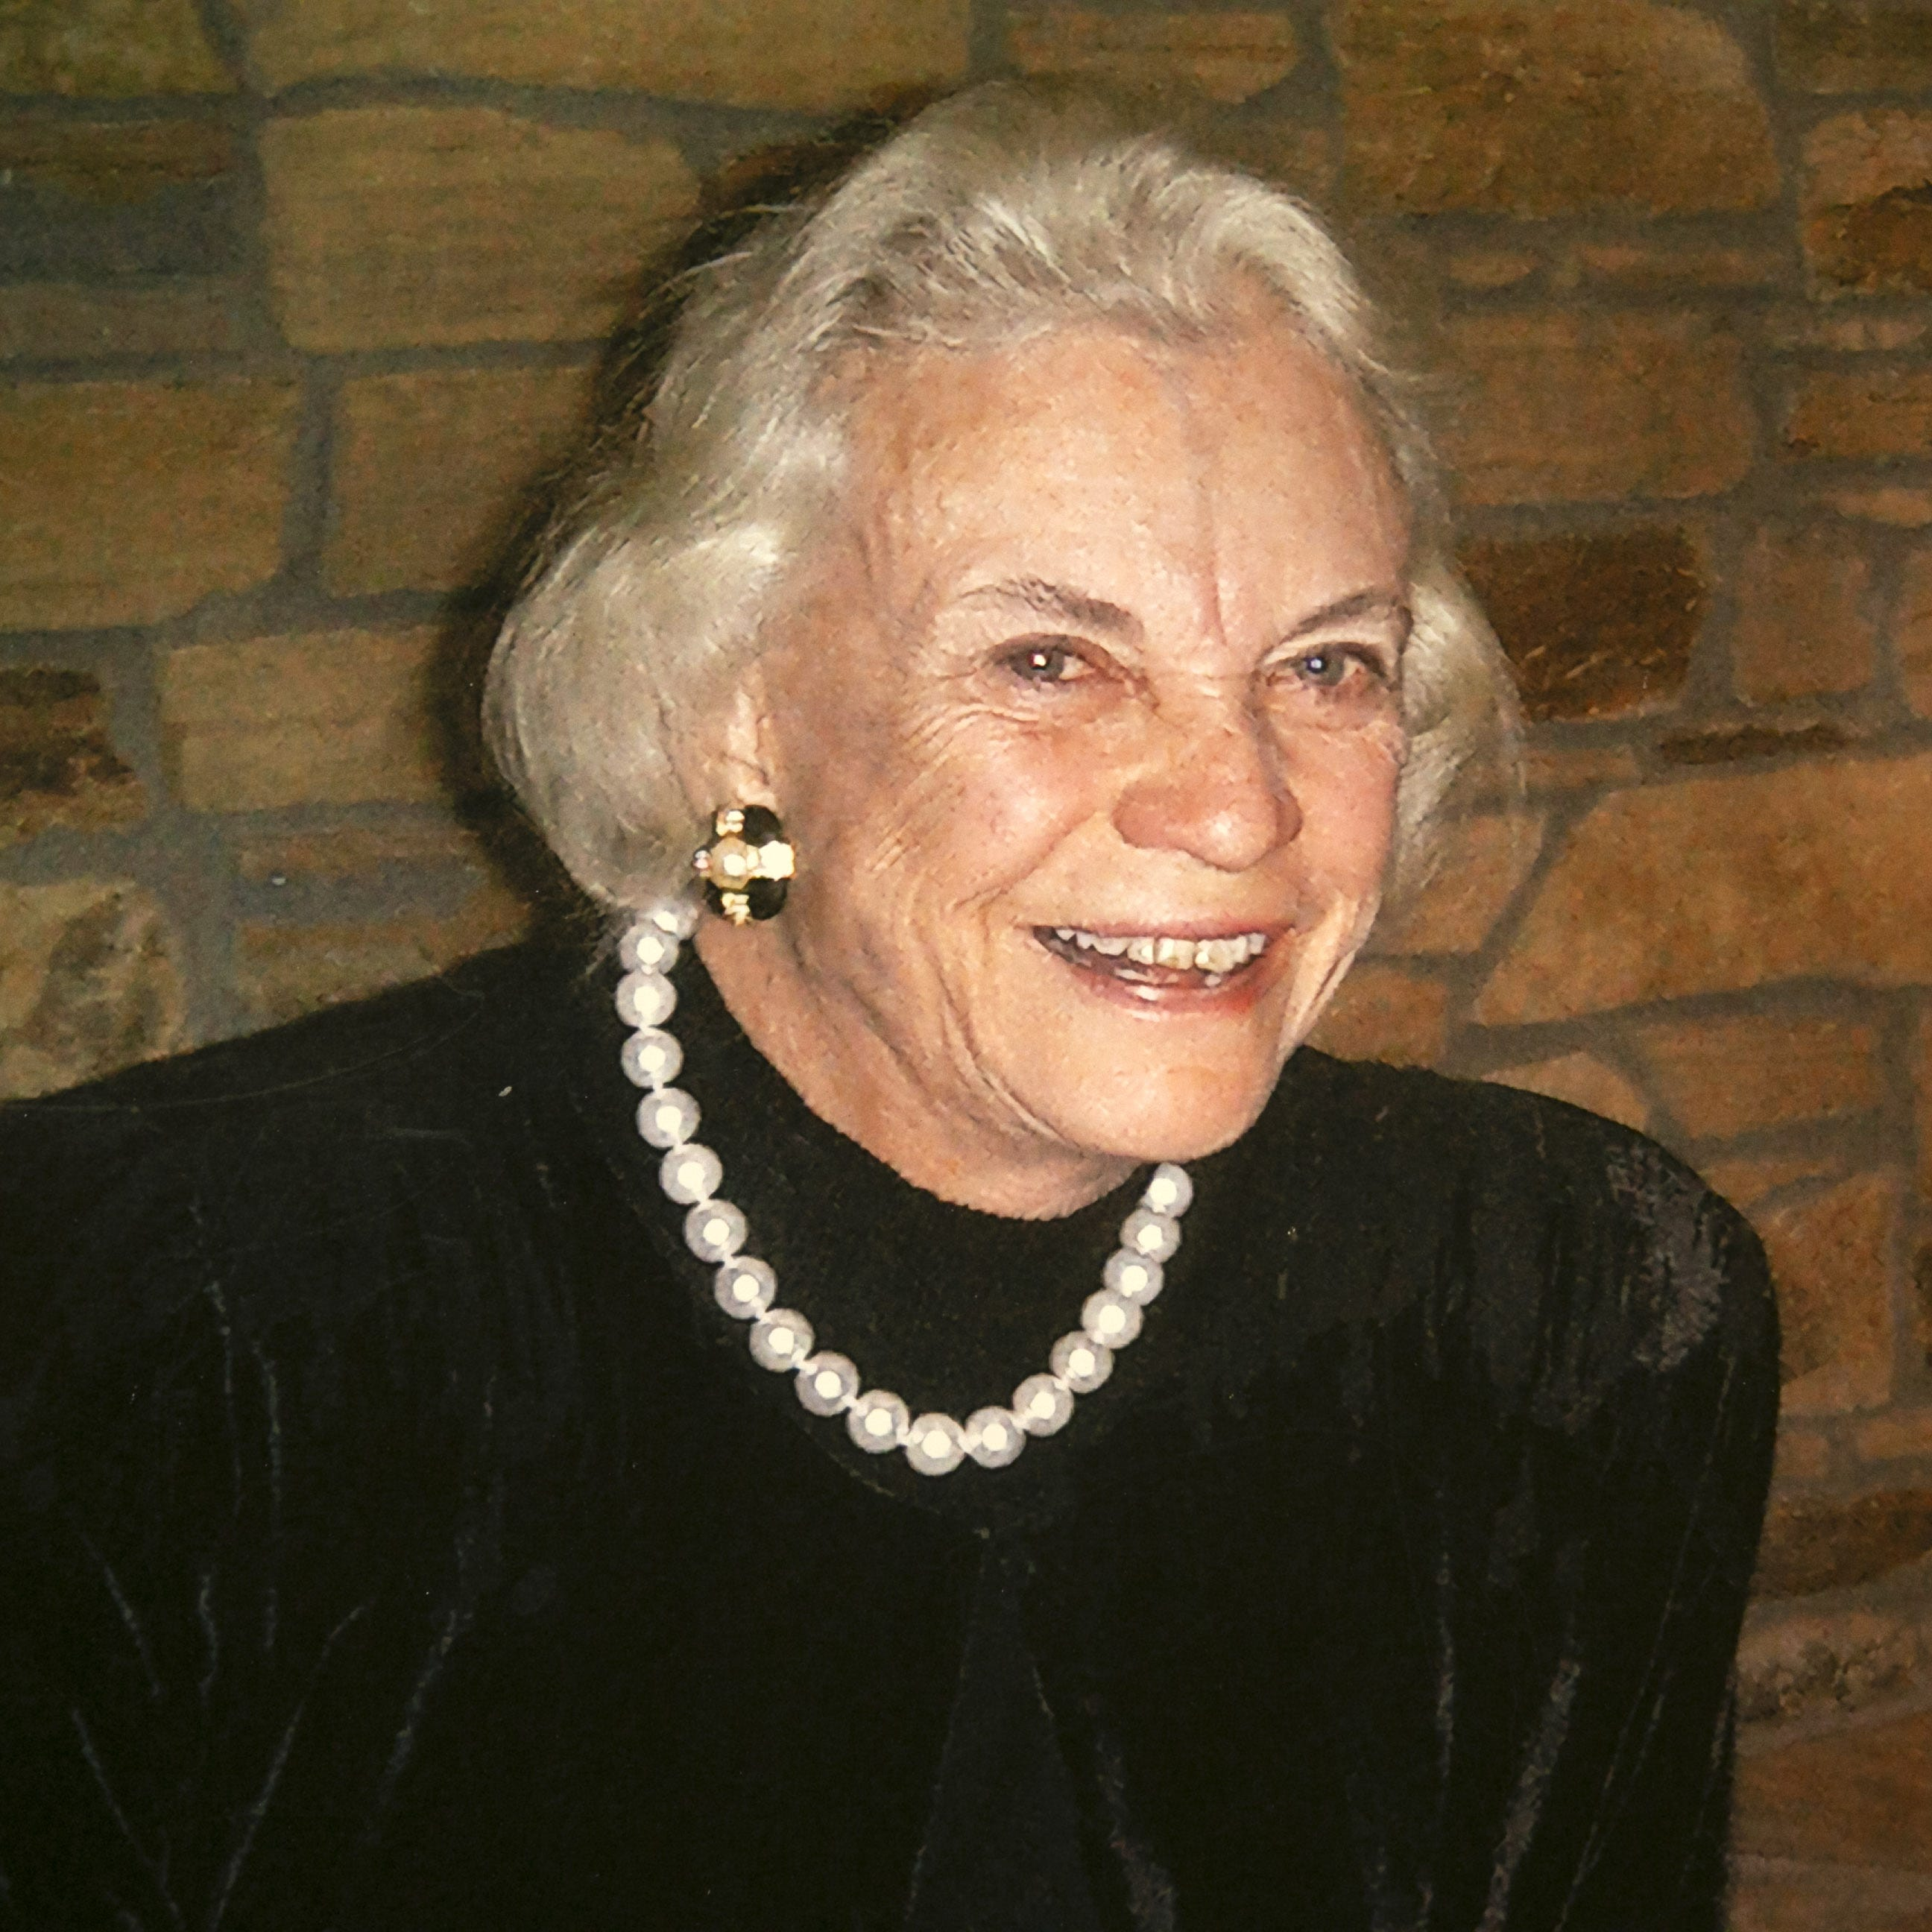 Arizona lawmakers can honor Justice O'Connor by passing the Equal Rights Amendment